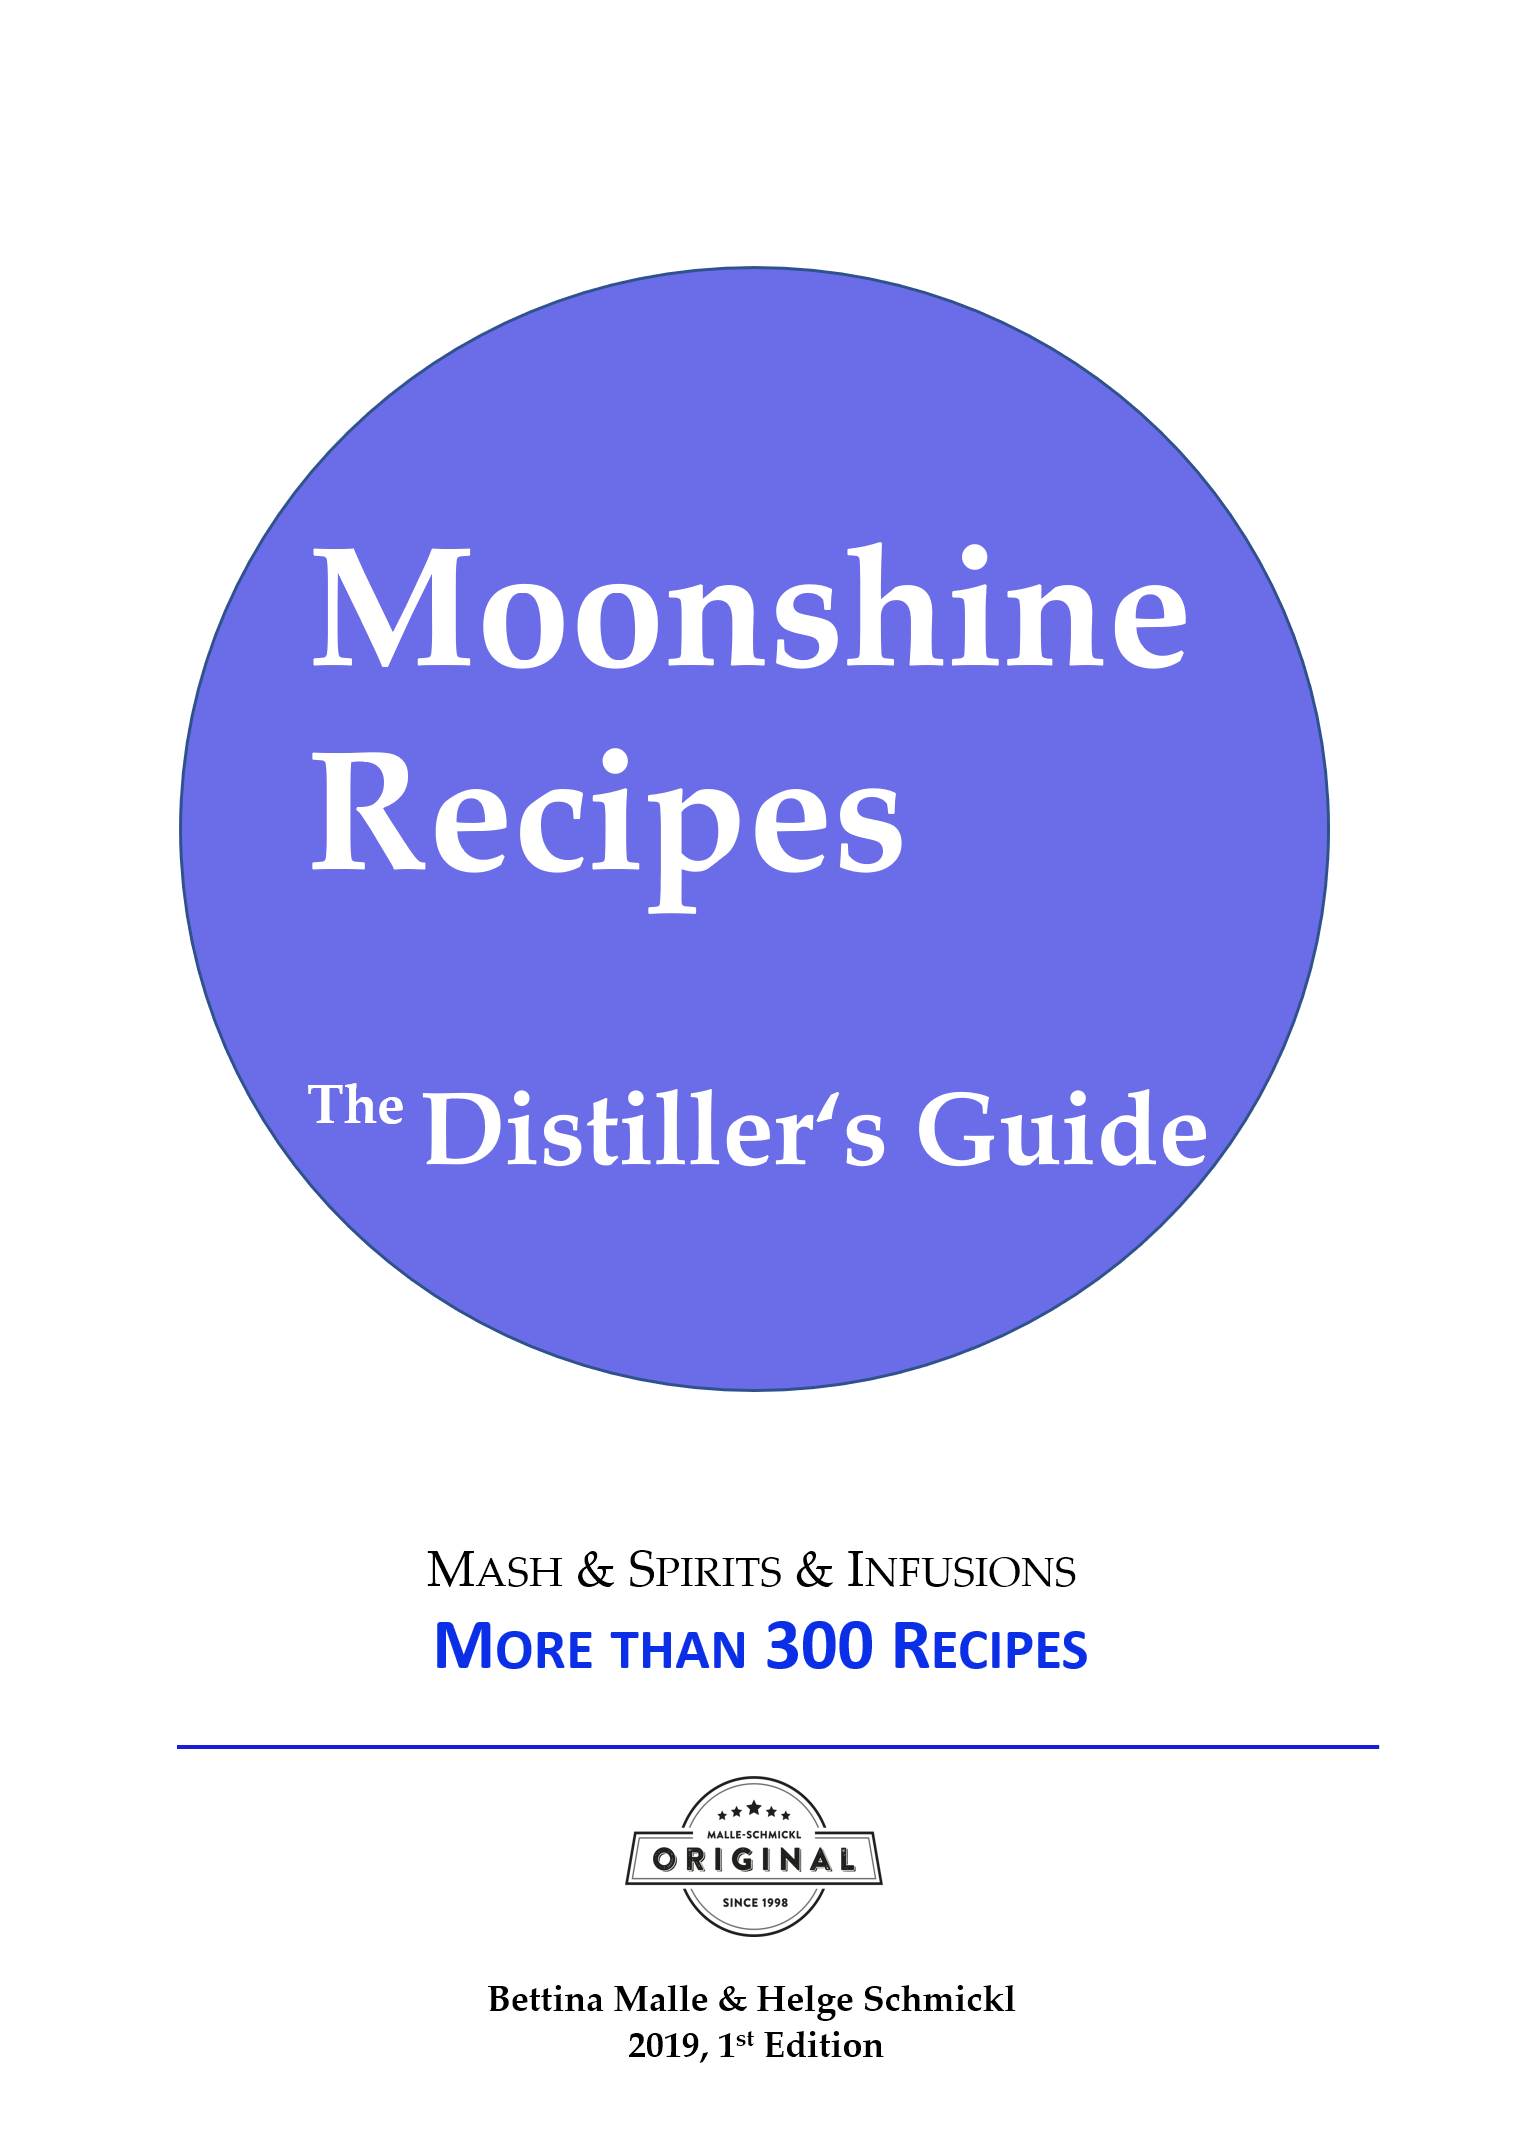 Moonshine Recipes